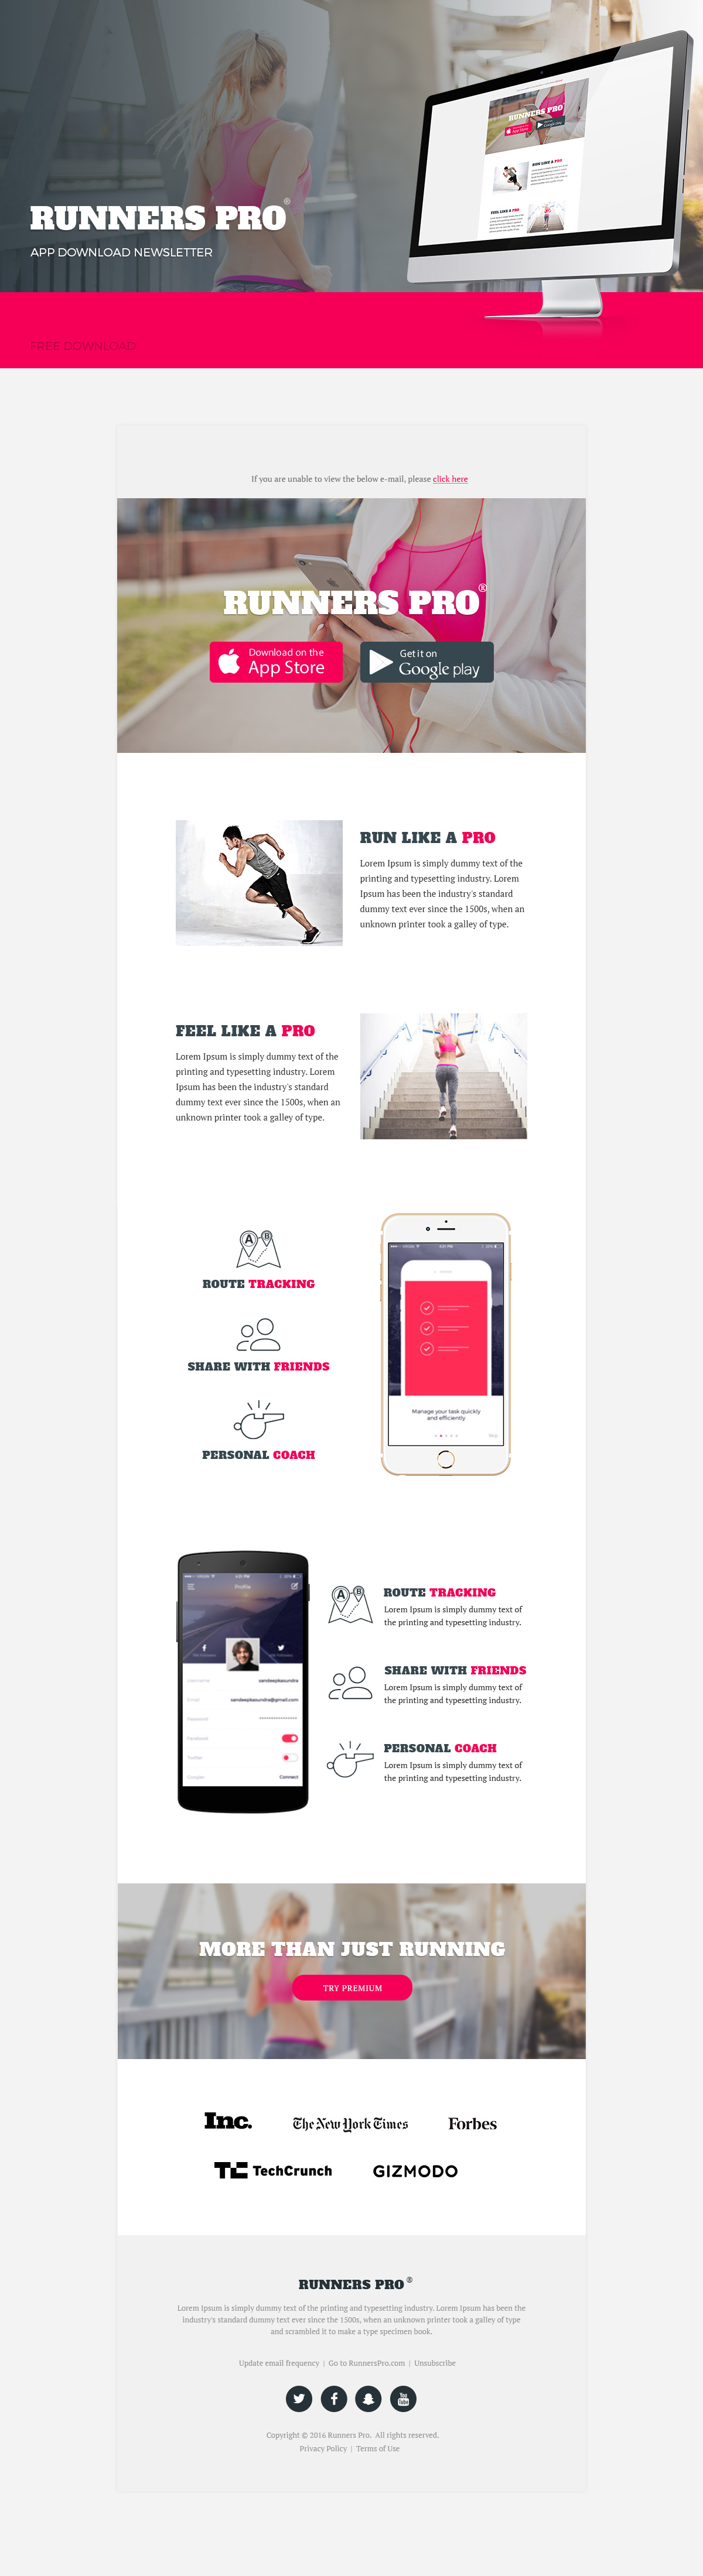 Runners Pro – Free App Download Newsletter